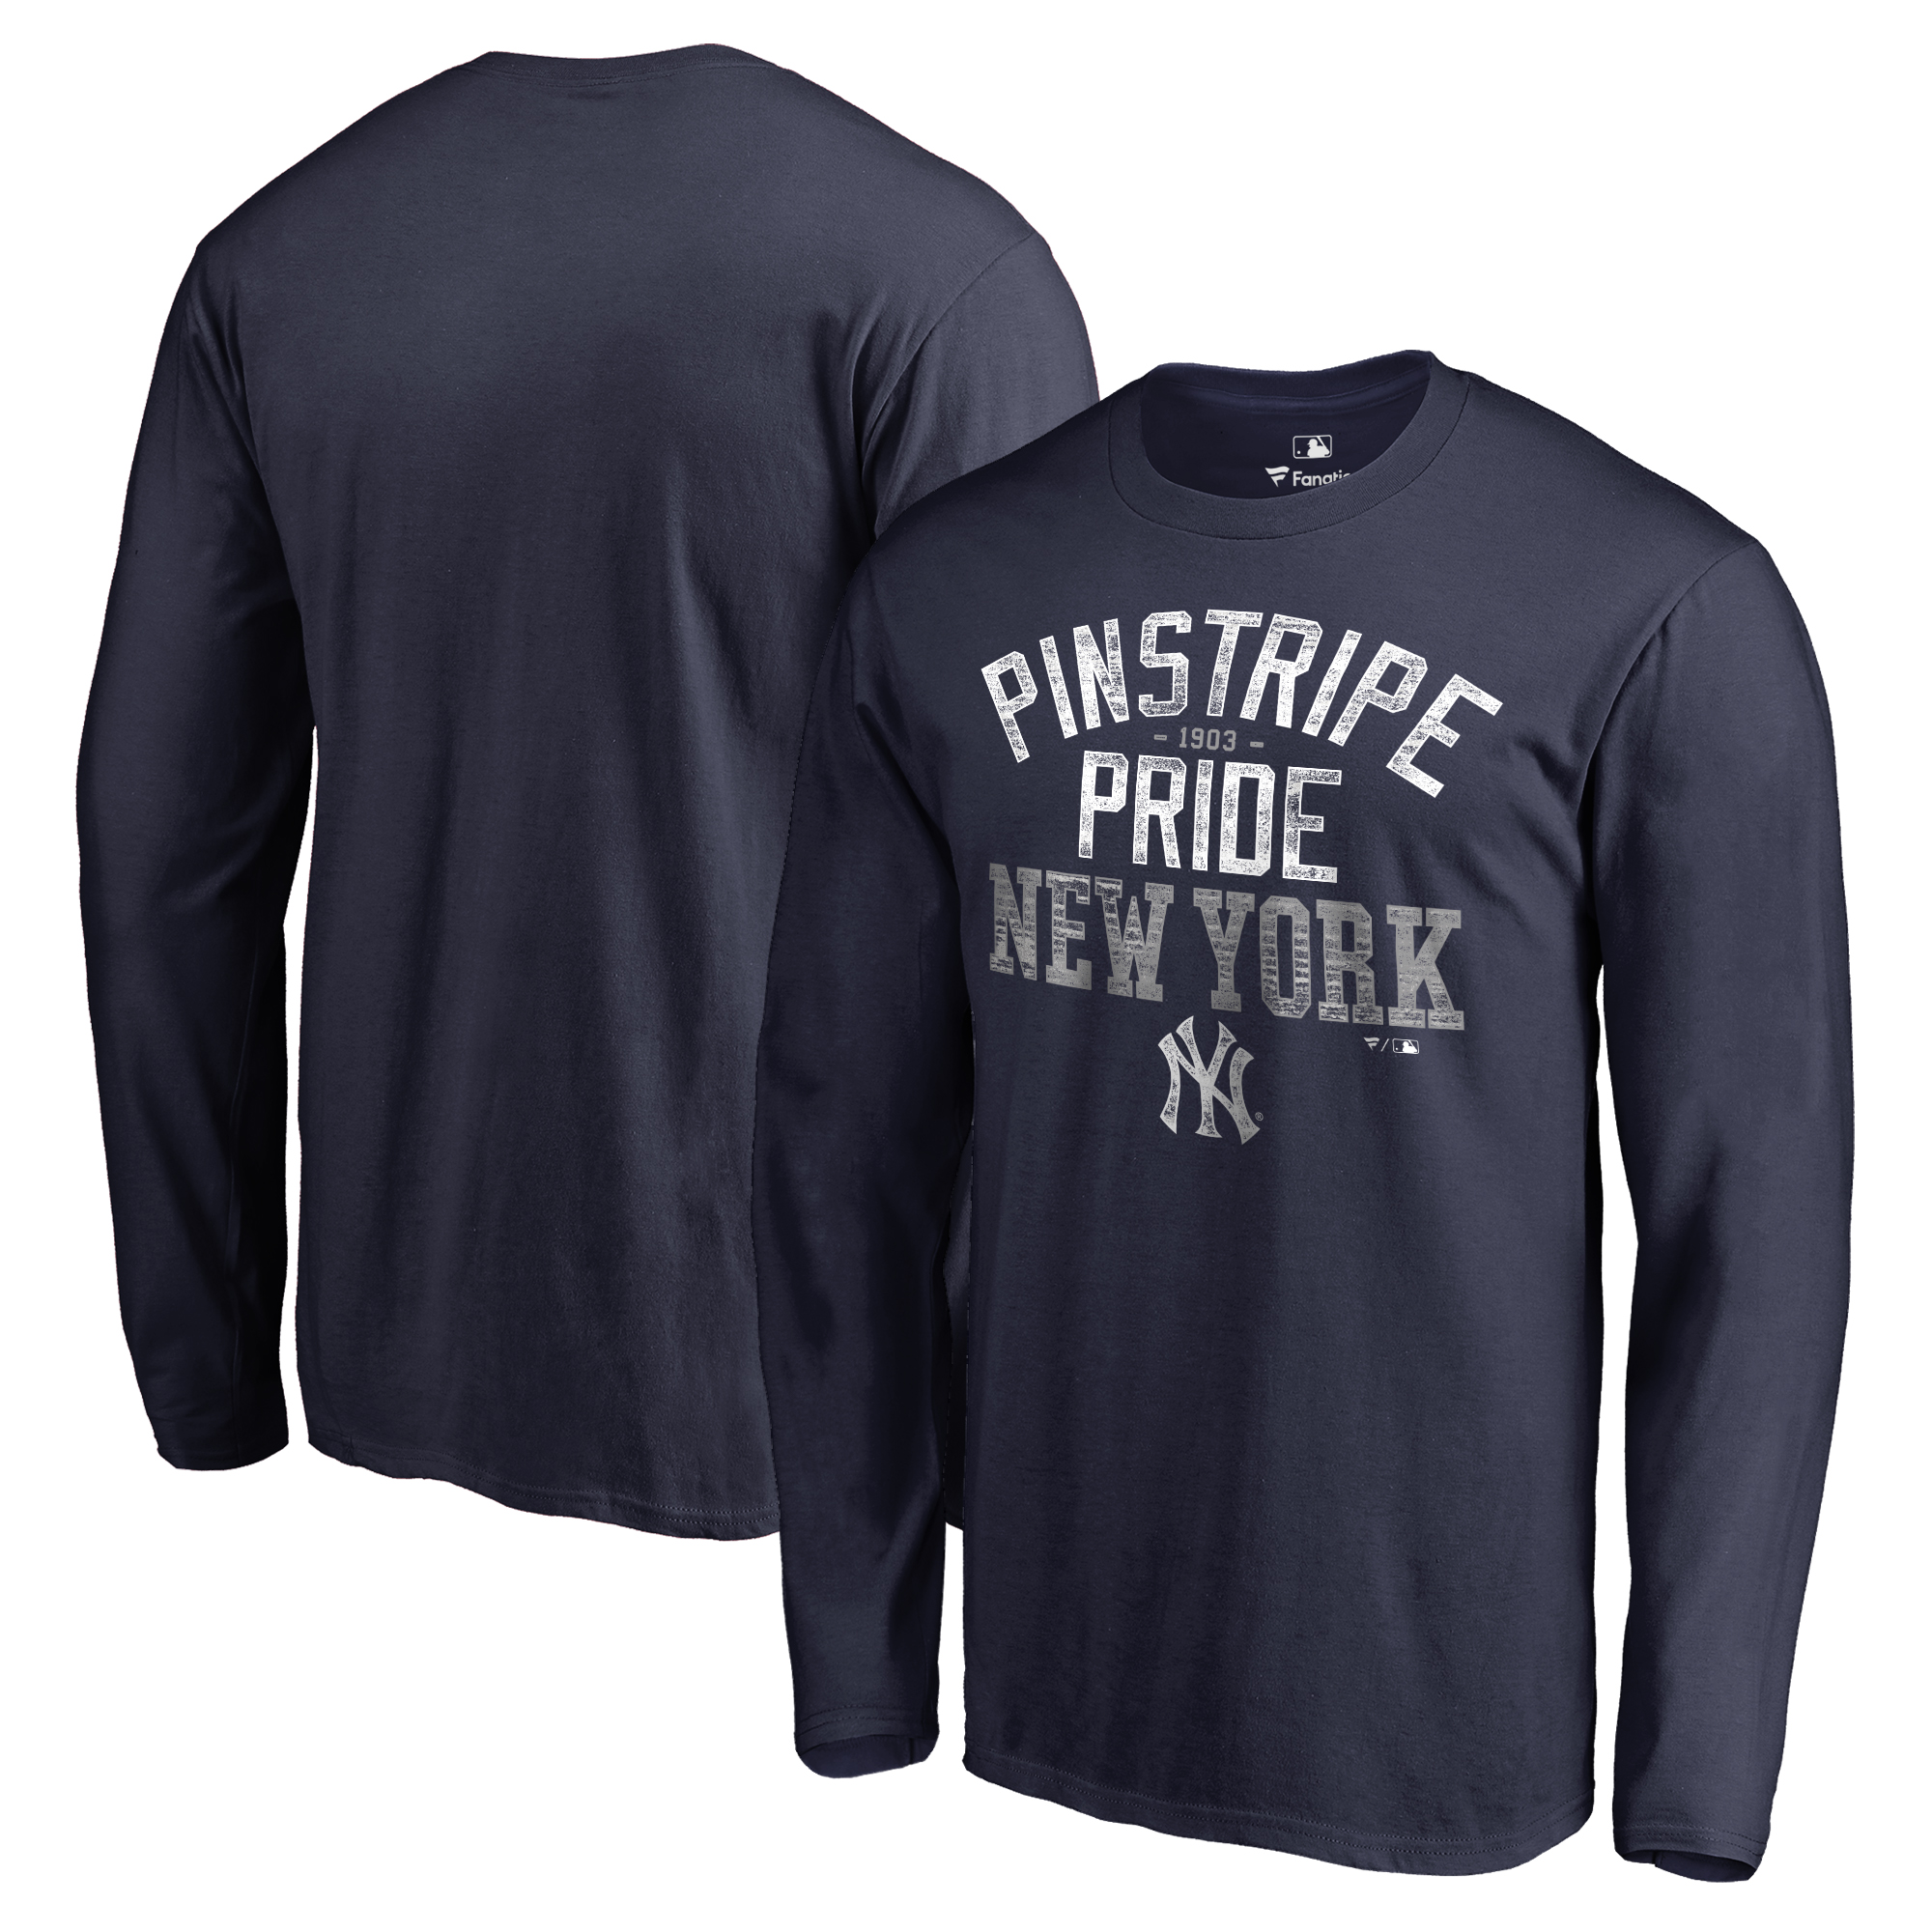 New York Yankees Fanatics Branded Big & Tall Pinstripe Pride Hometown Collection Long Sleeve T-Shirt - Navy